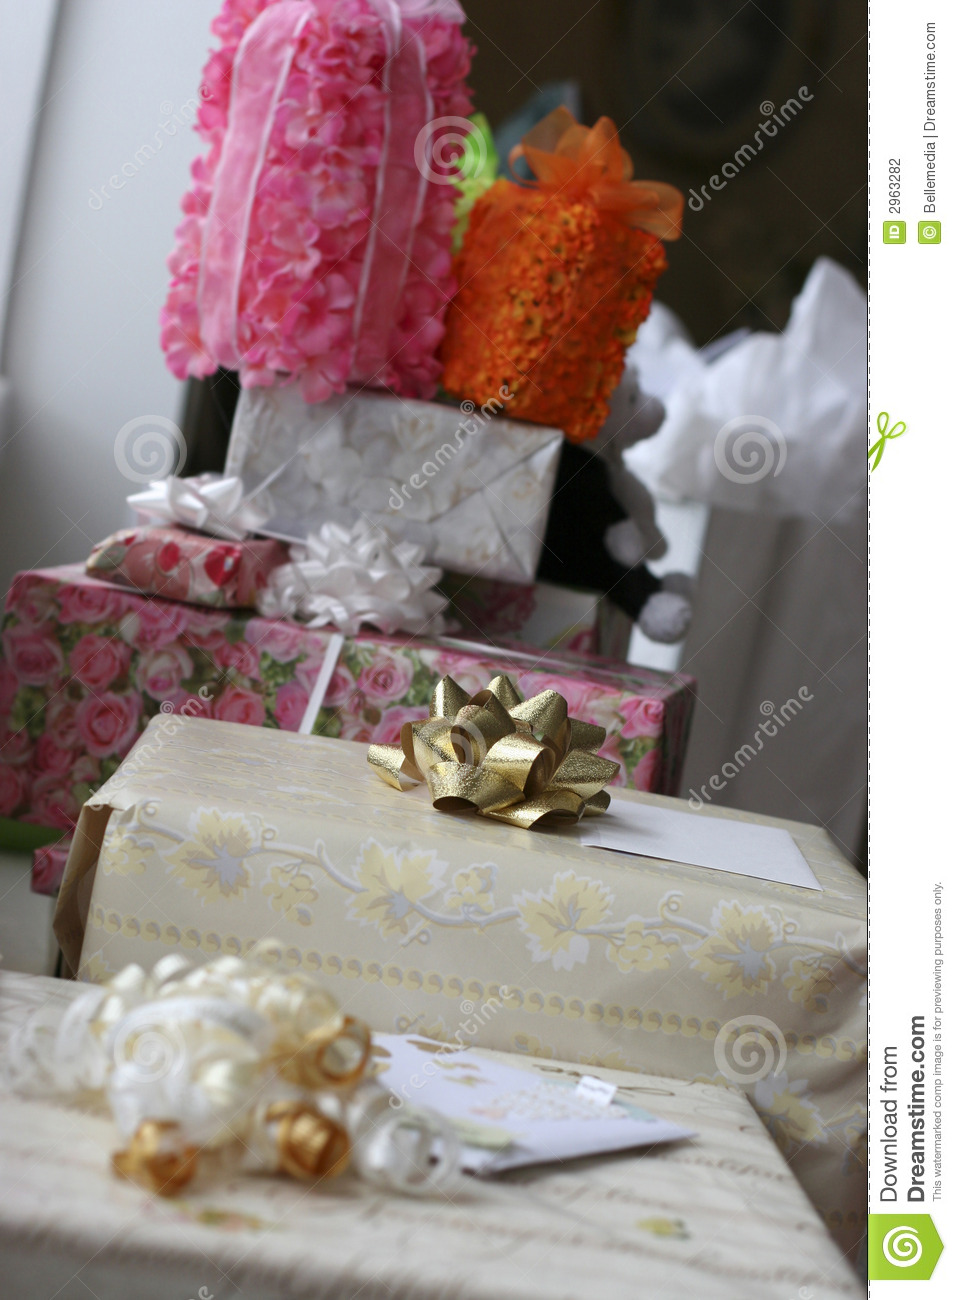 Wedding Gift List Next : Several gift-wrappped wedding gifts of various sizes next to each ...